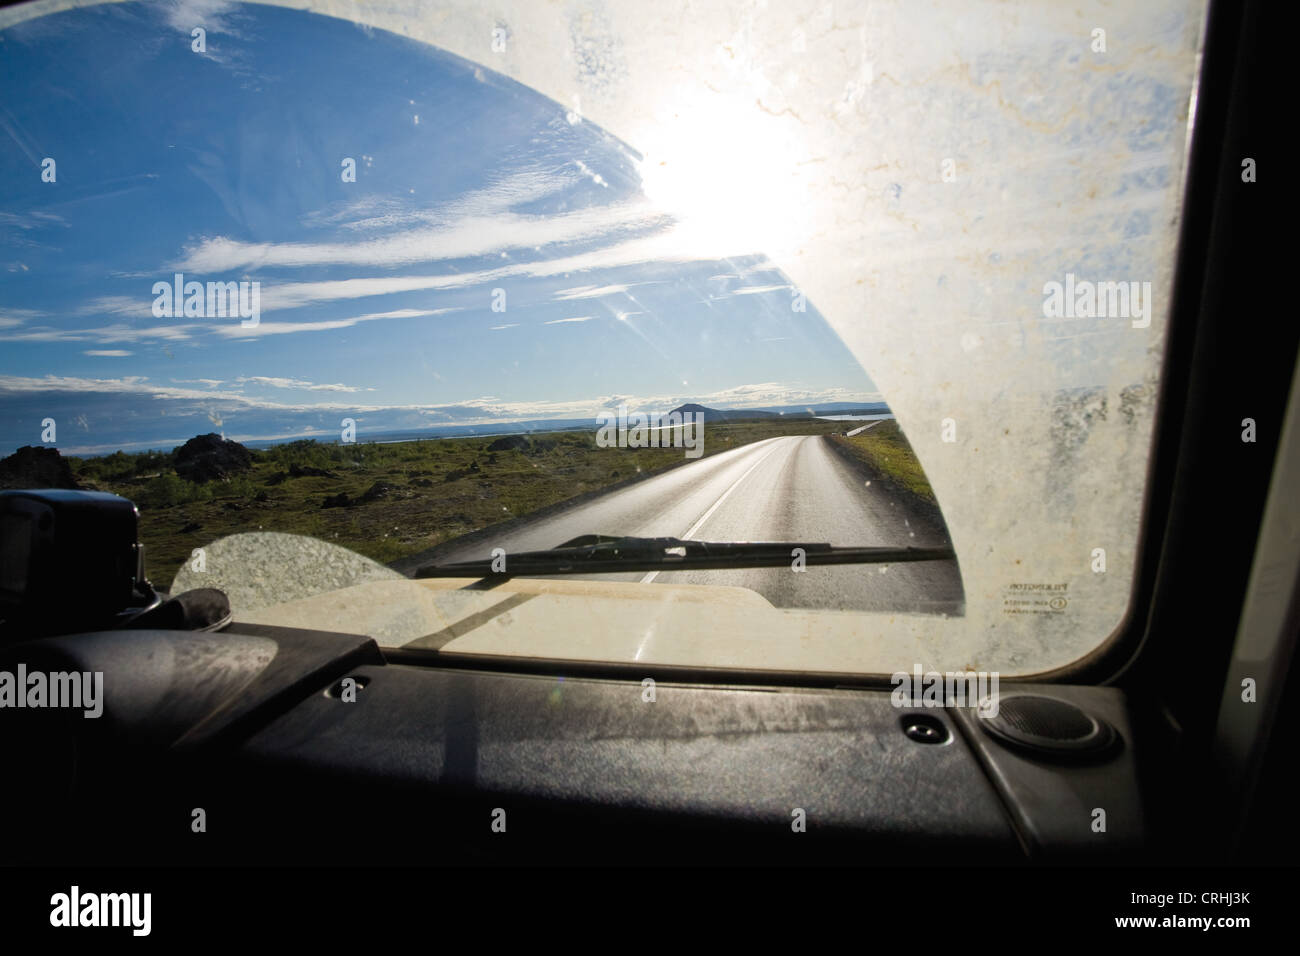 Country road viewed through car windshield - Stock Image